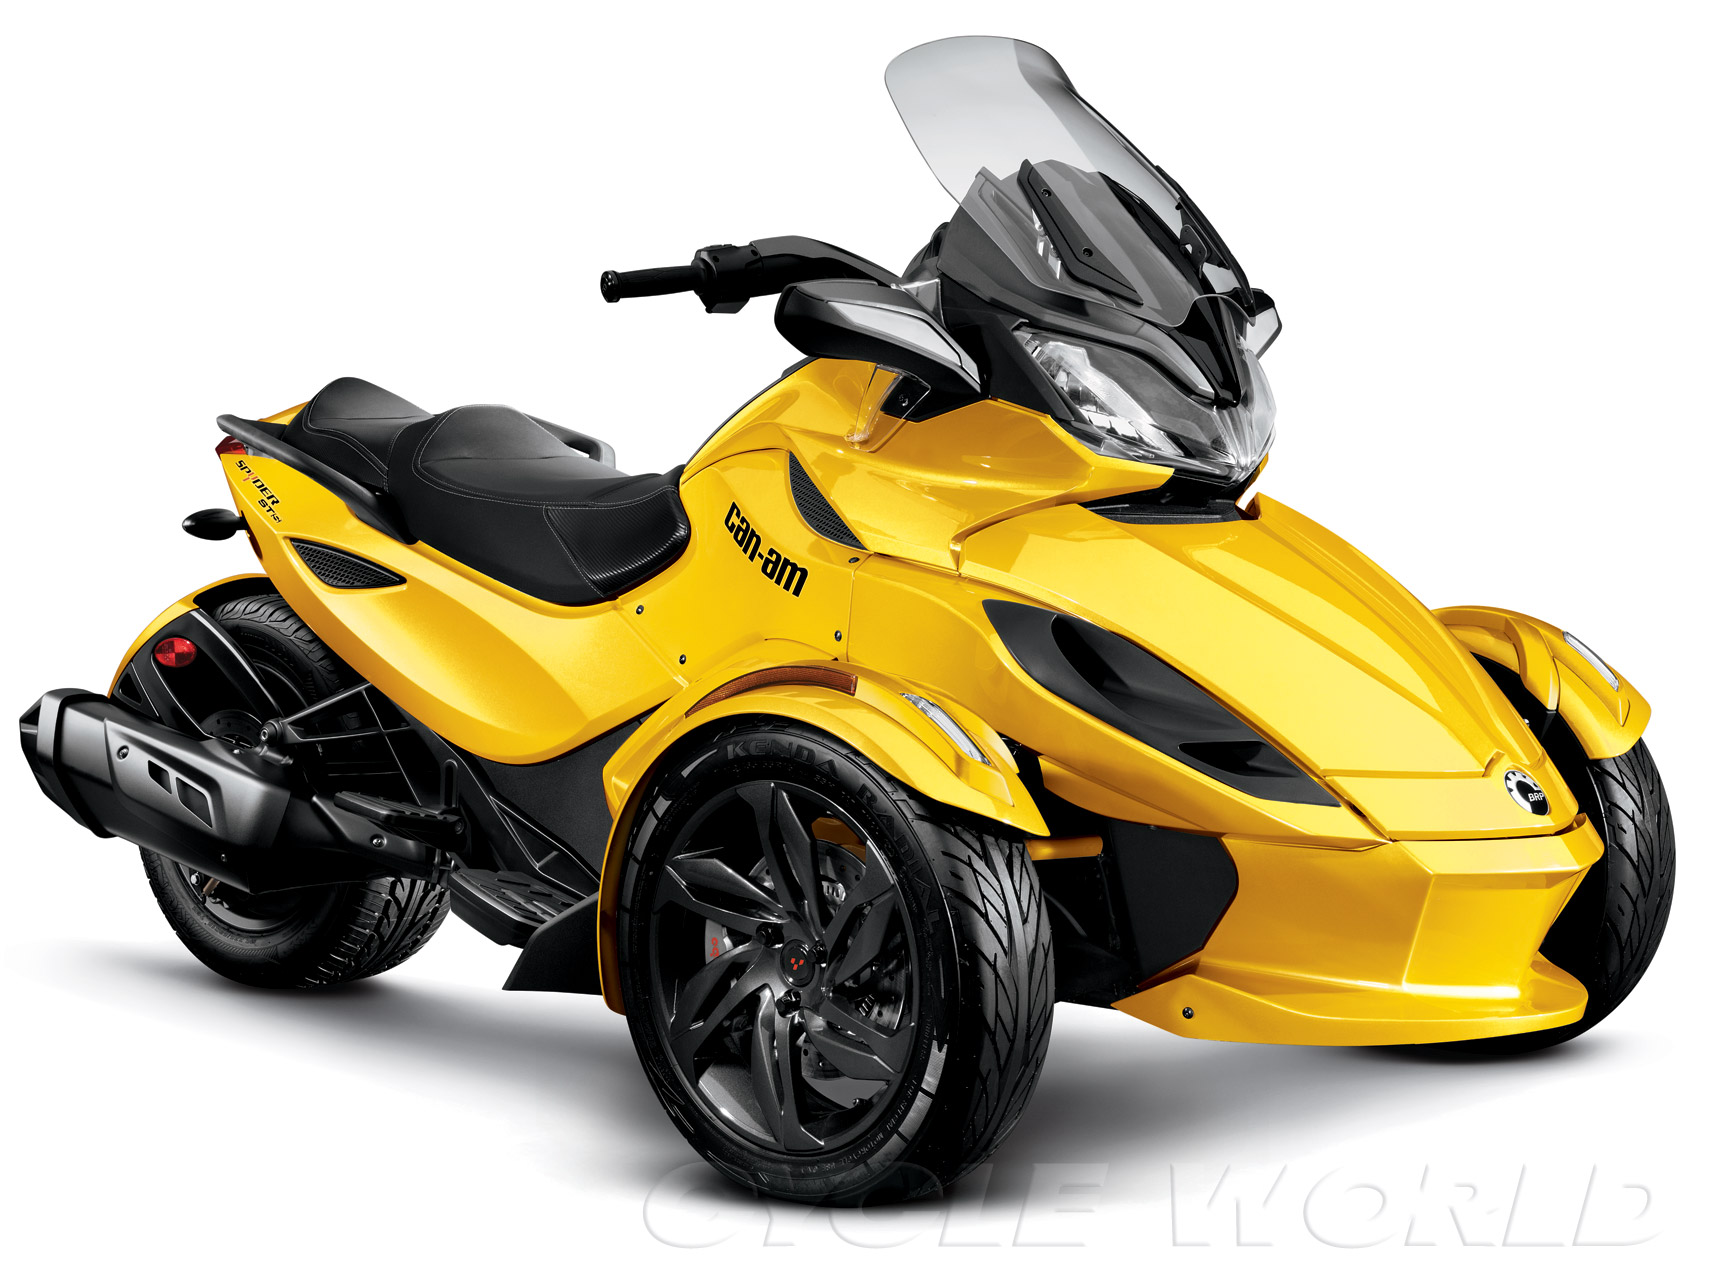 2013 Can-Am Spyders- First Look Review